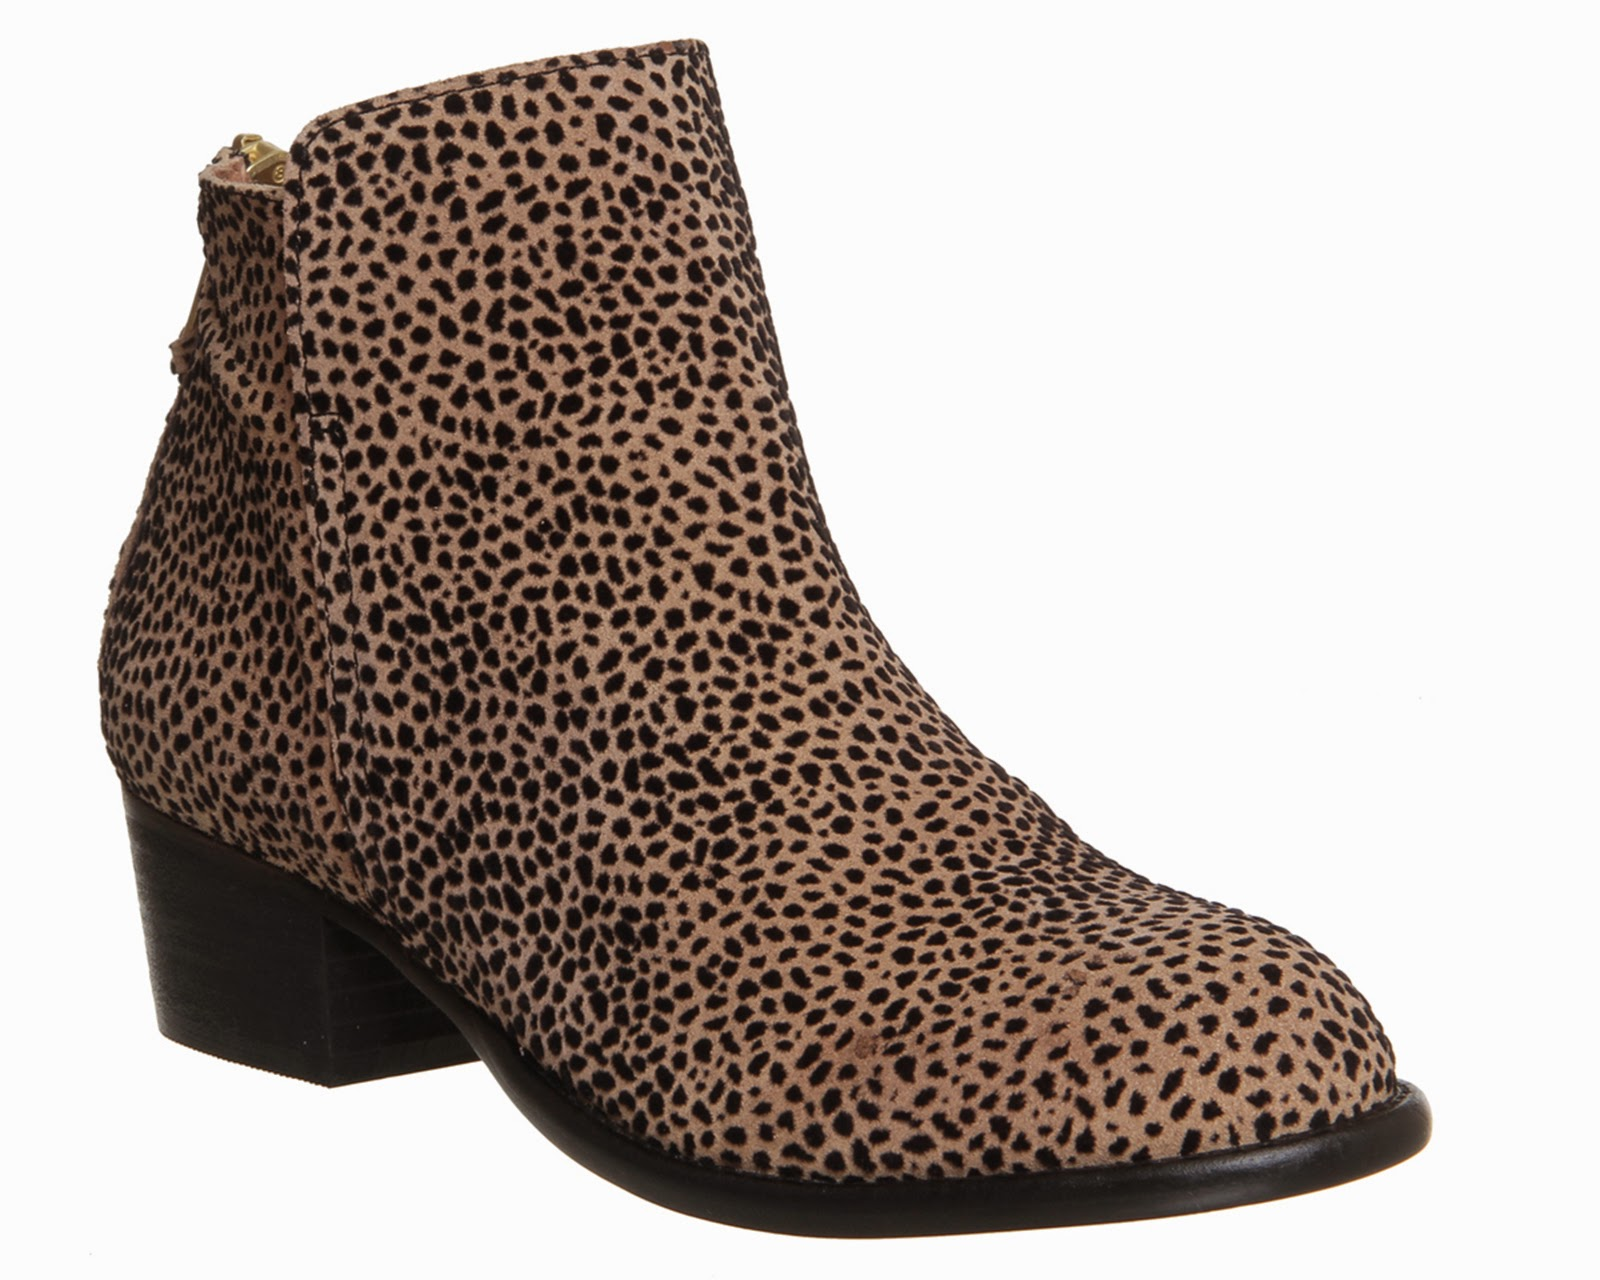 leopard suede ankle boots, office leopard print boots, leopard print ankle boots,